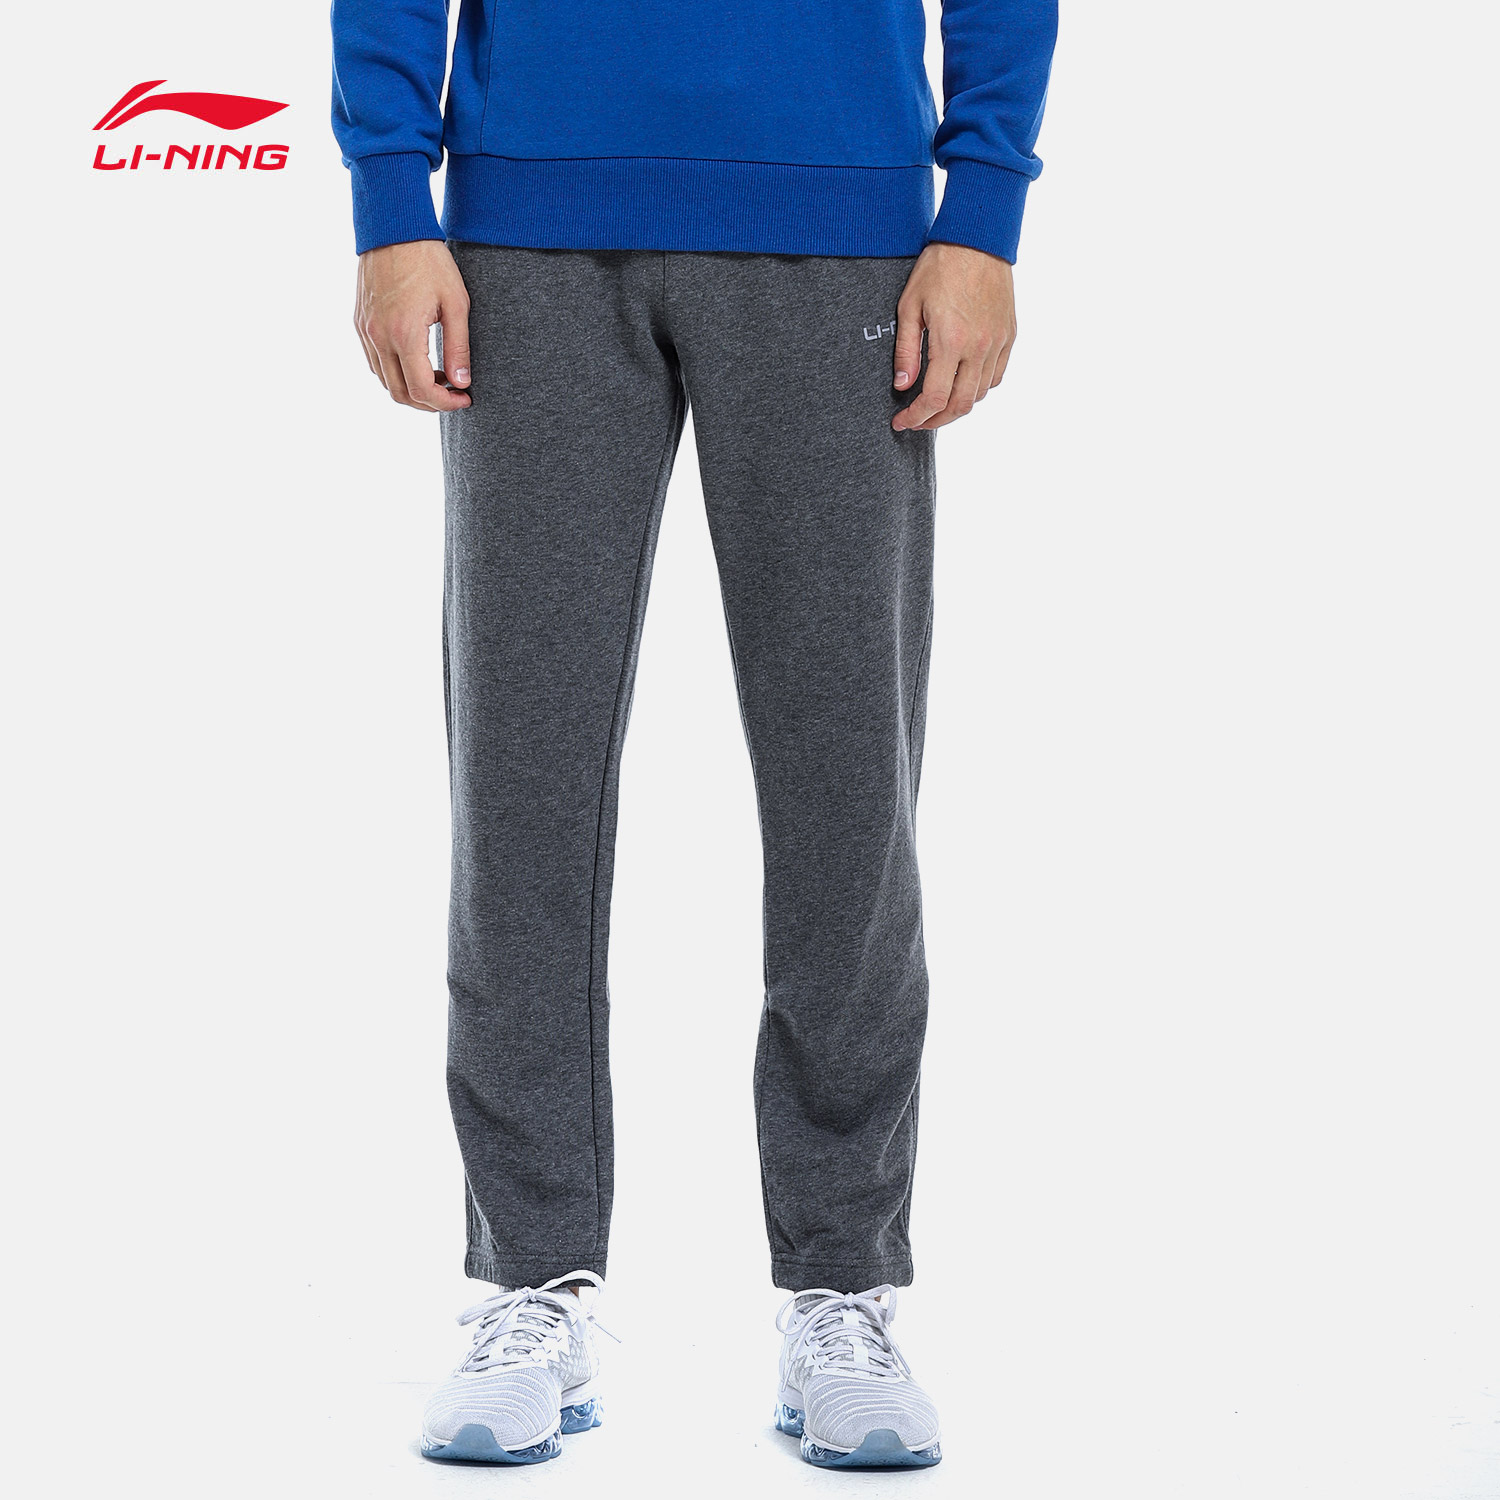 01a8dee1bcfd Li Ning Wei pants men s sports pants specials clearance sweater ...